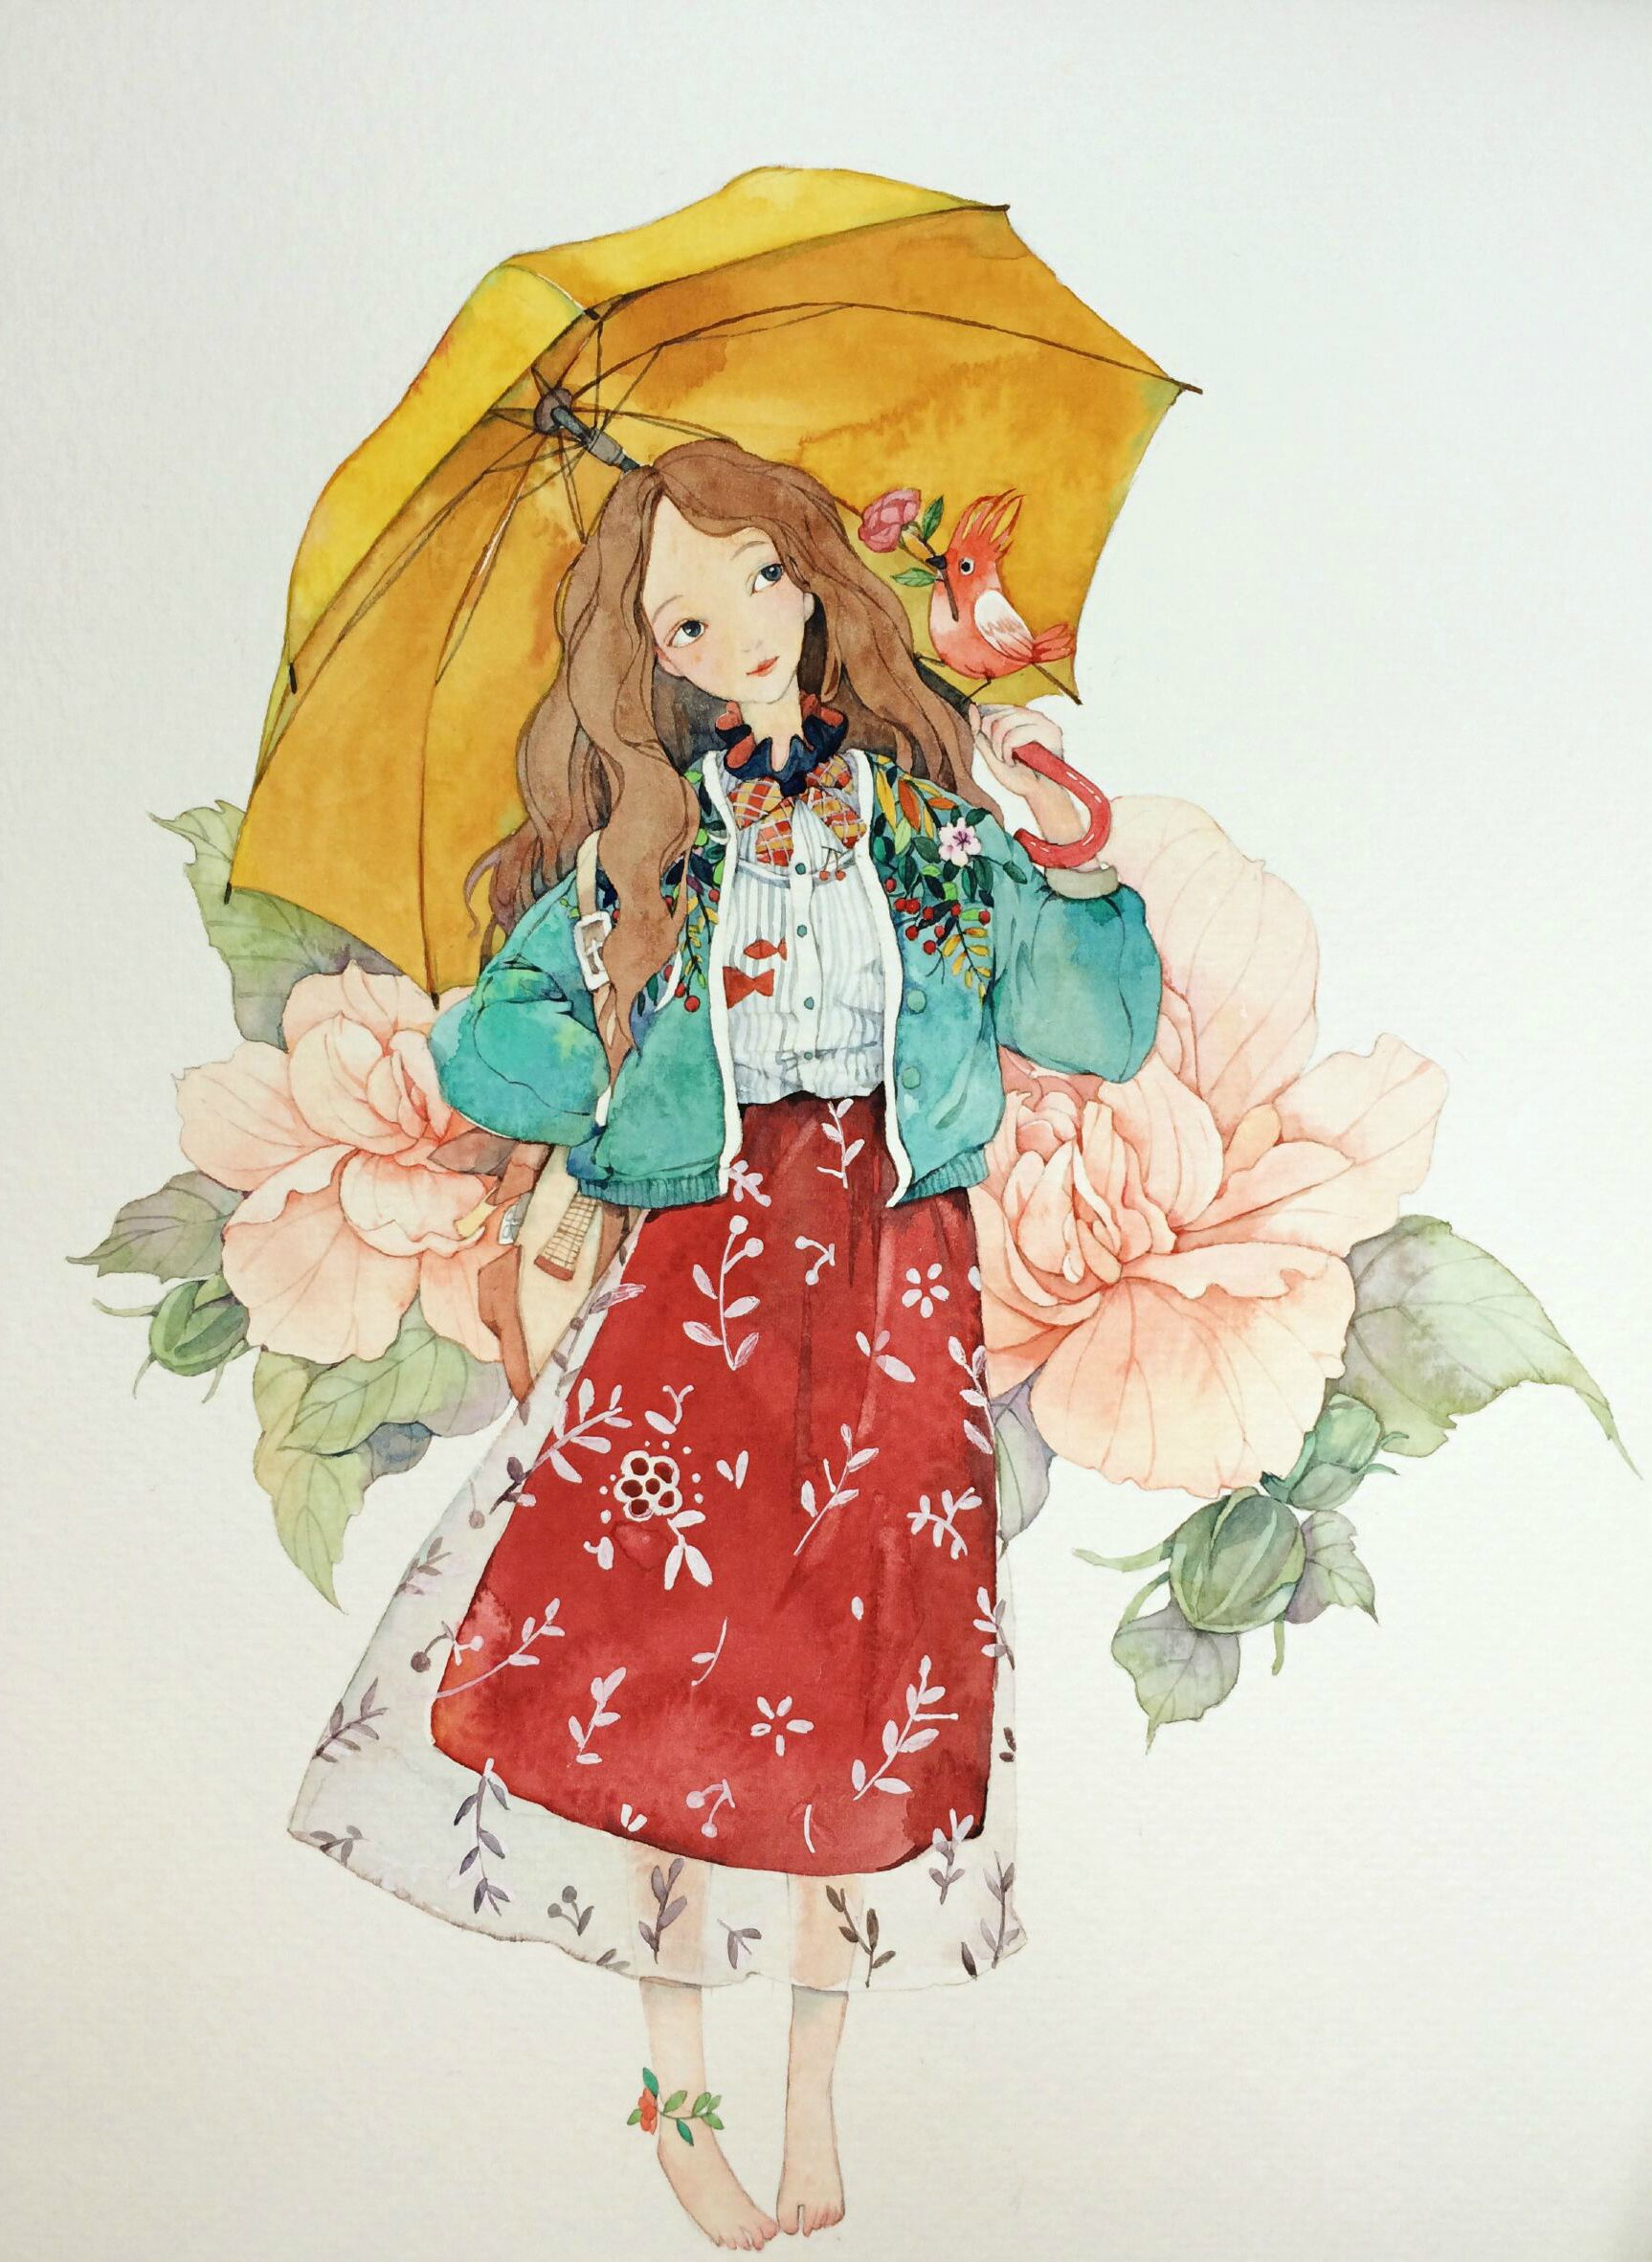 By 那仁 (Naren) | Cute illustration, Watercolor illustration, Watercolor girl